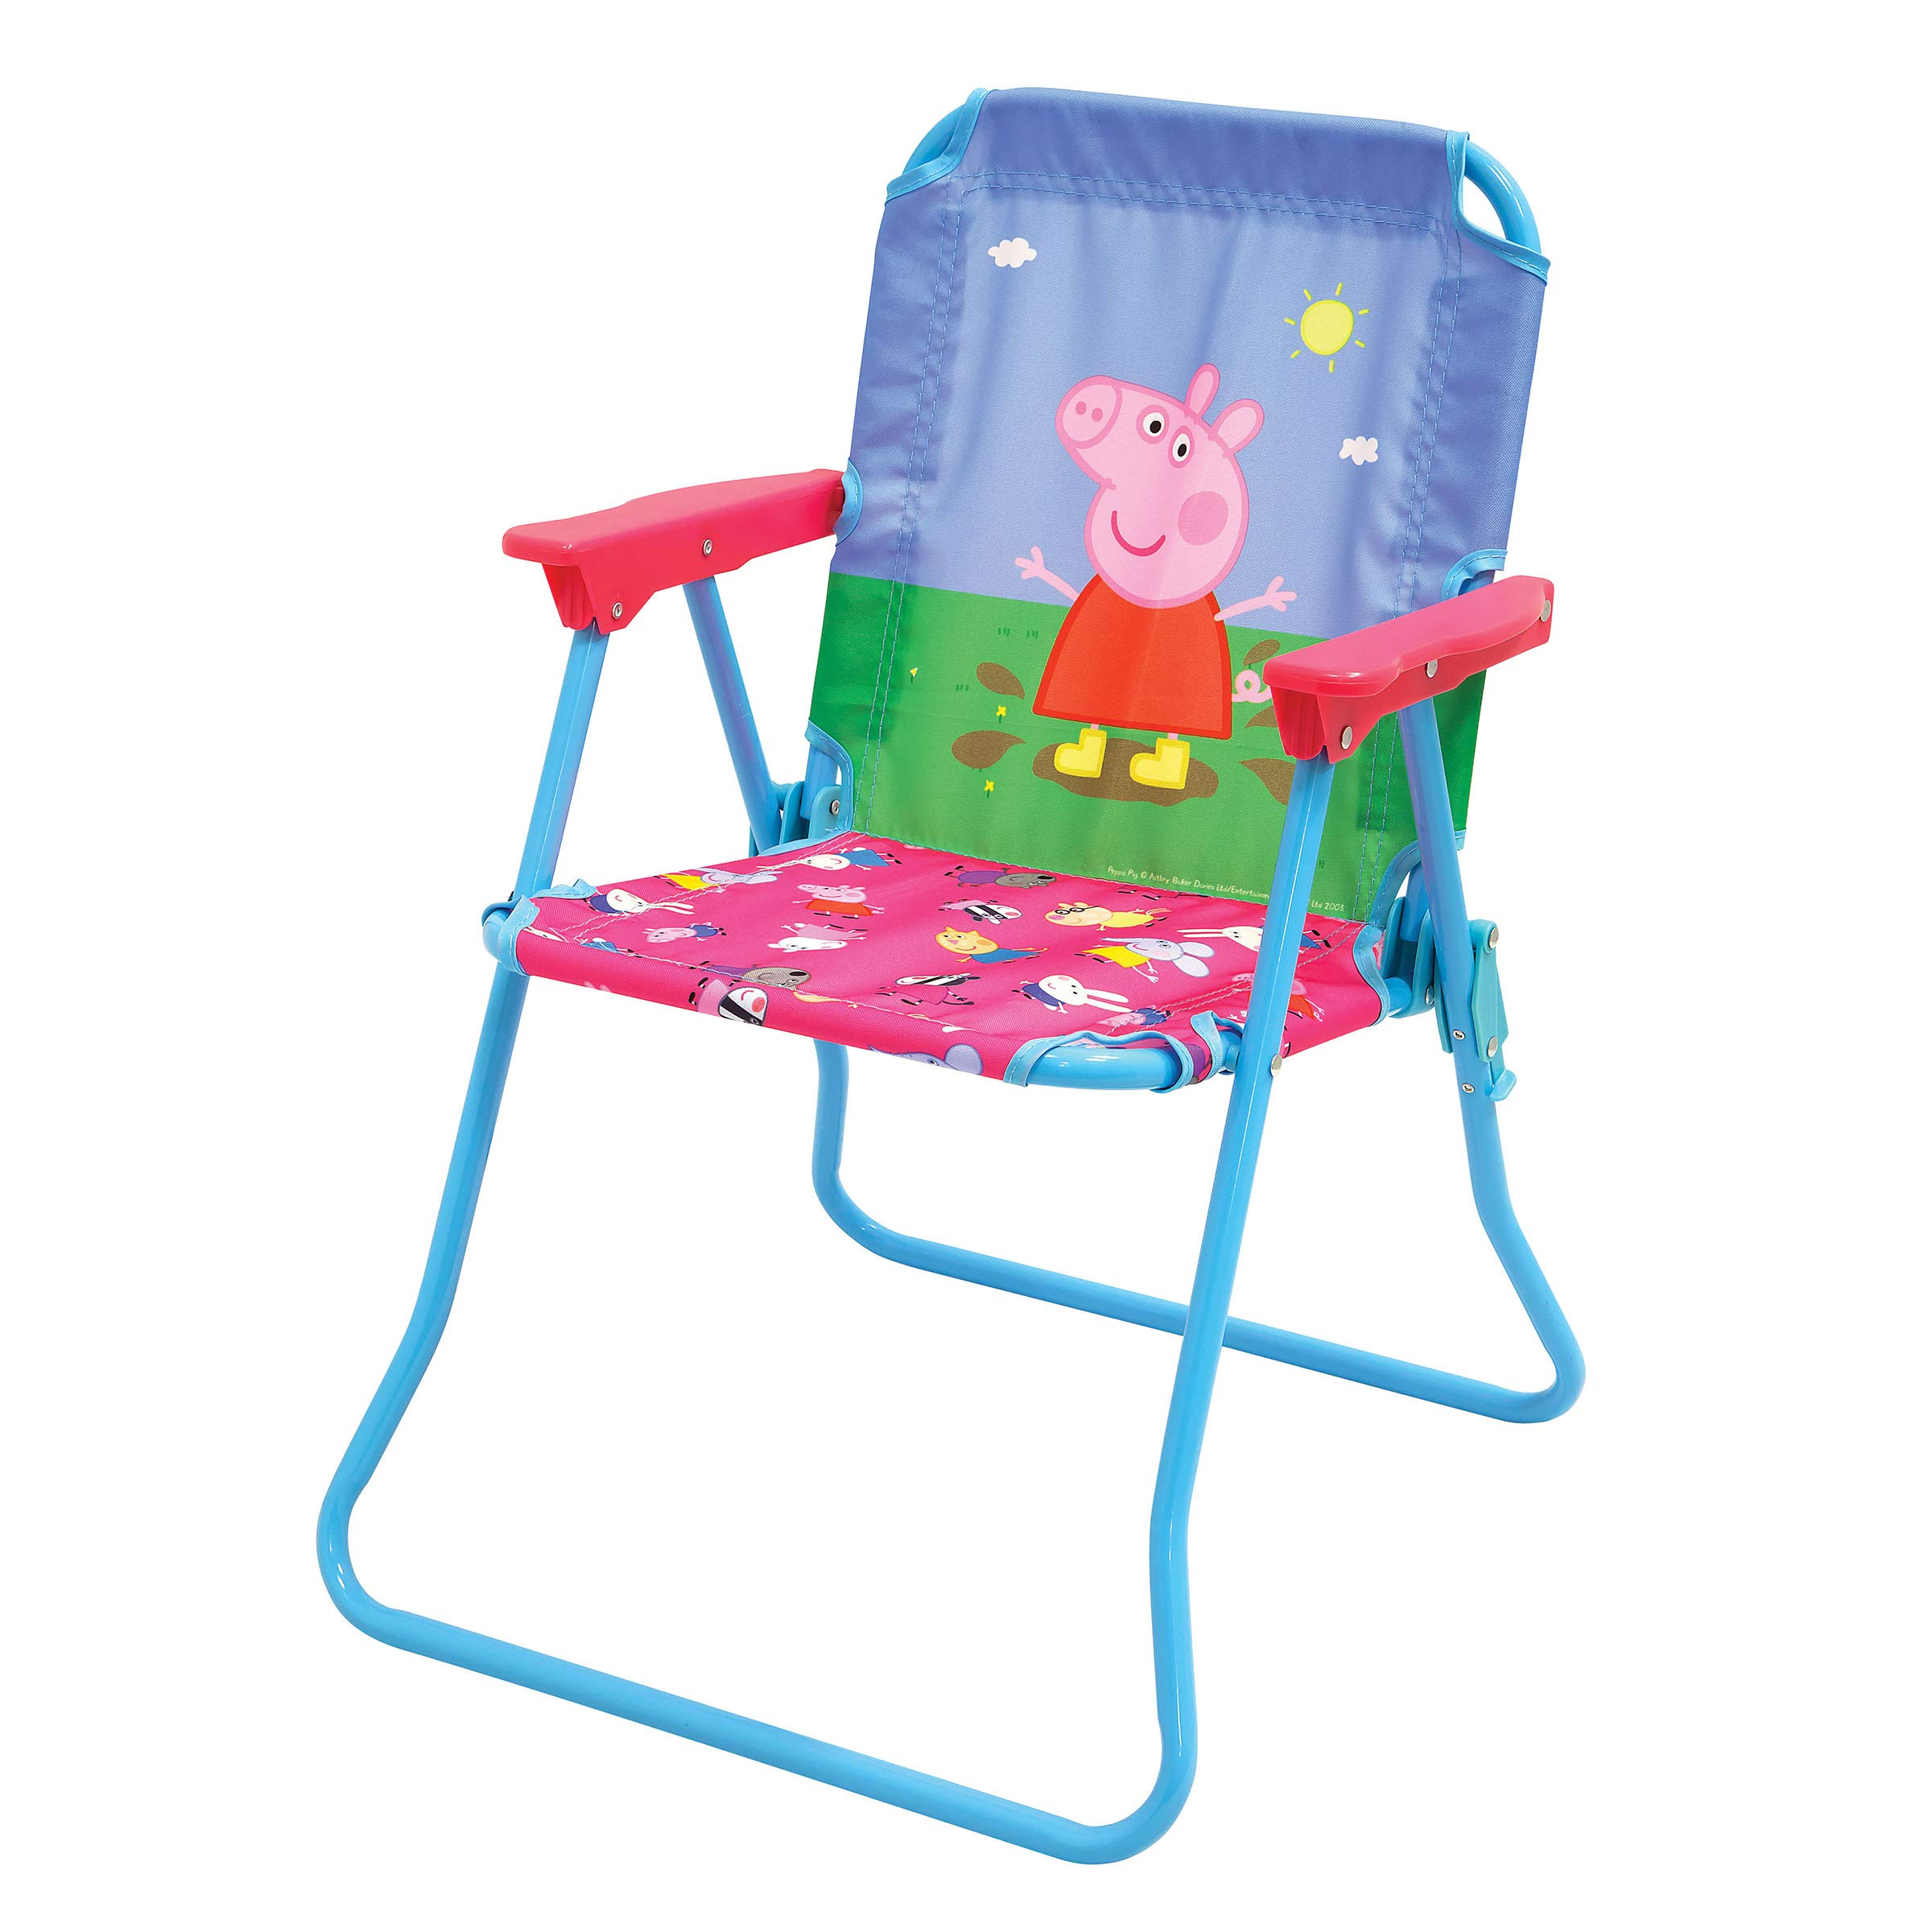 Peppa Pig Patio Chair for Kids, Portable Folding Lawn Chair